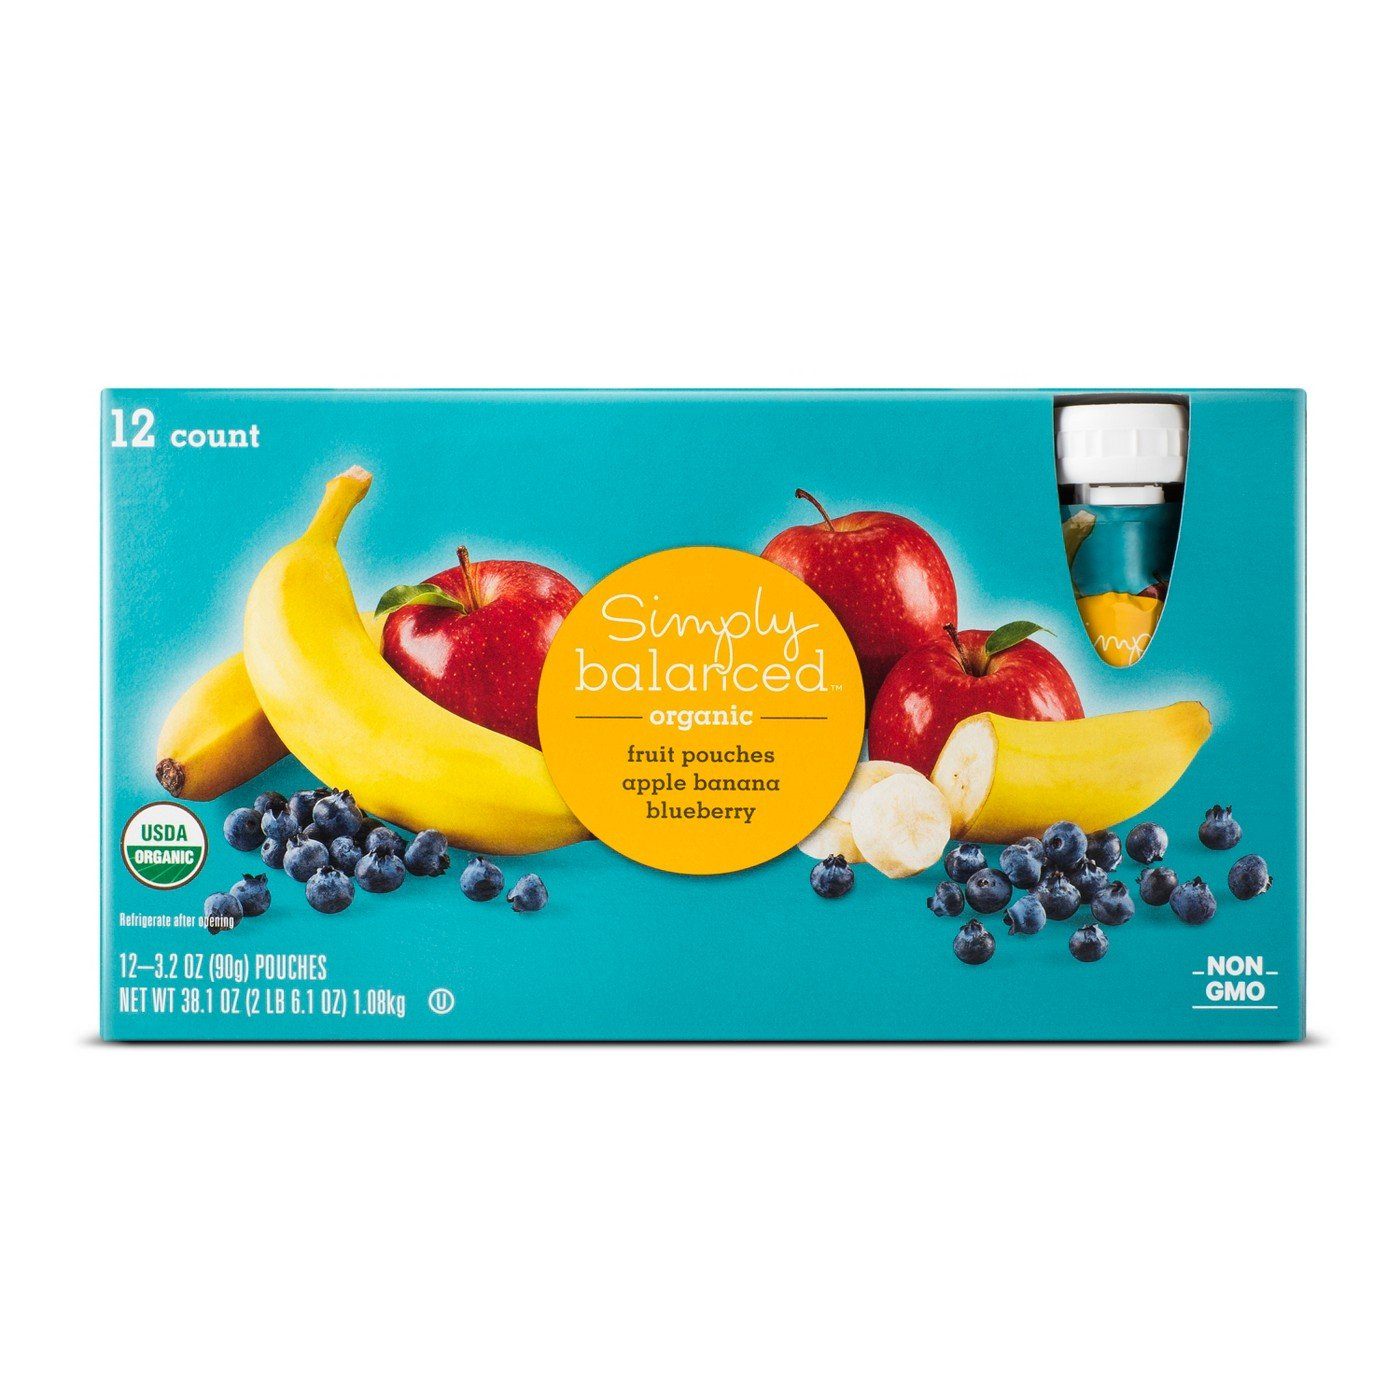 Apple Banana Blueberry Fruit Pouch 12ct - 3.2oz - Simply Balanced